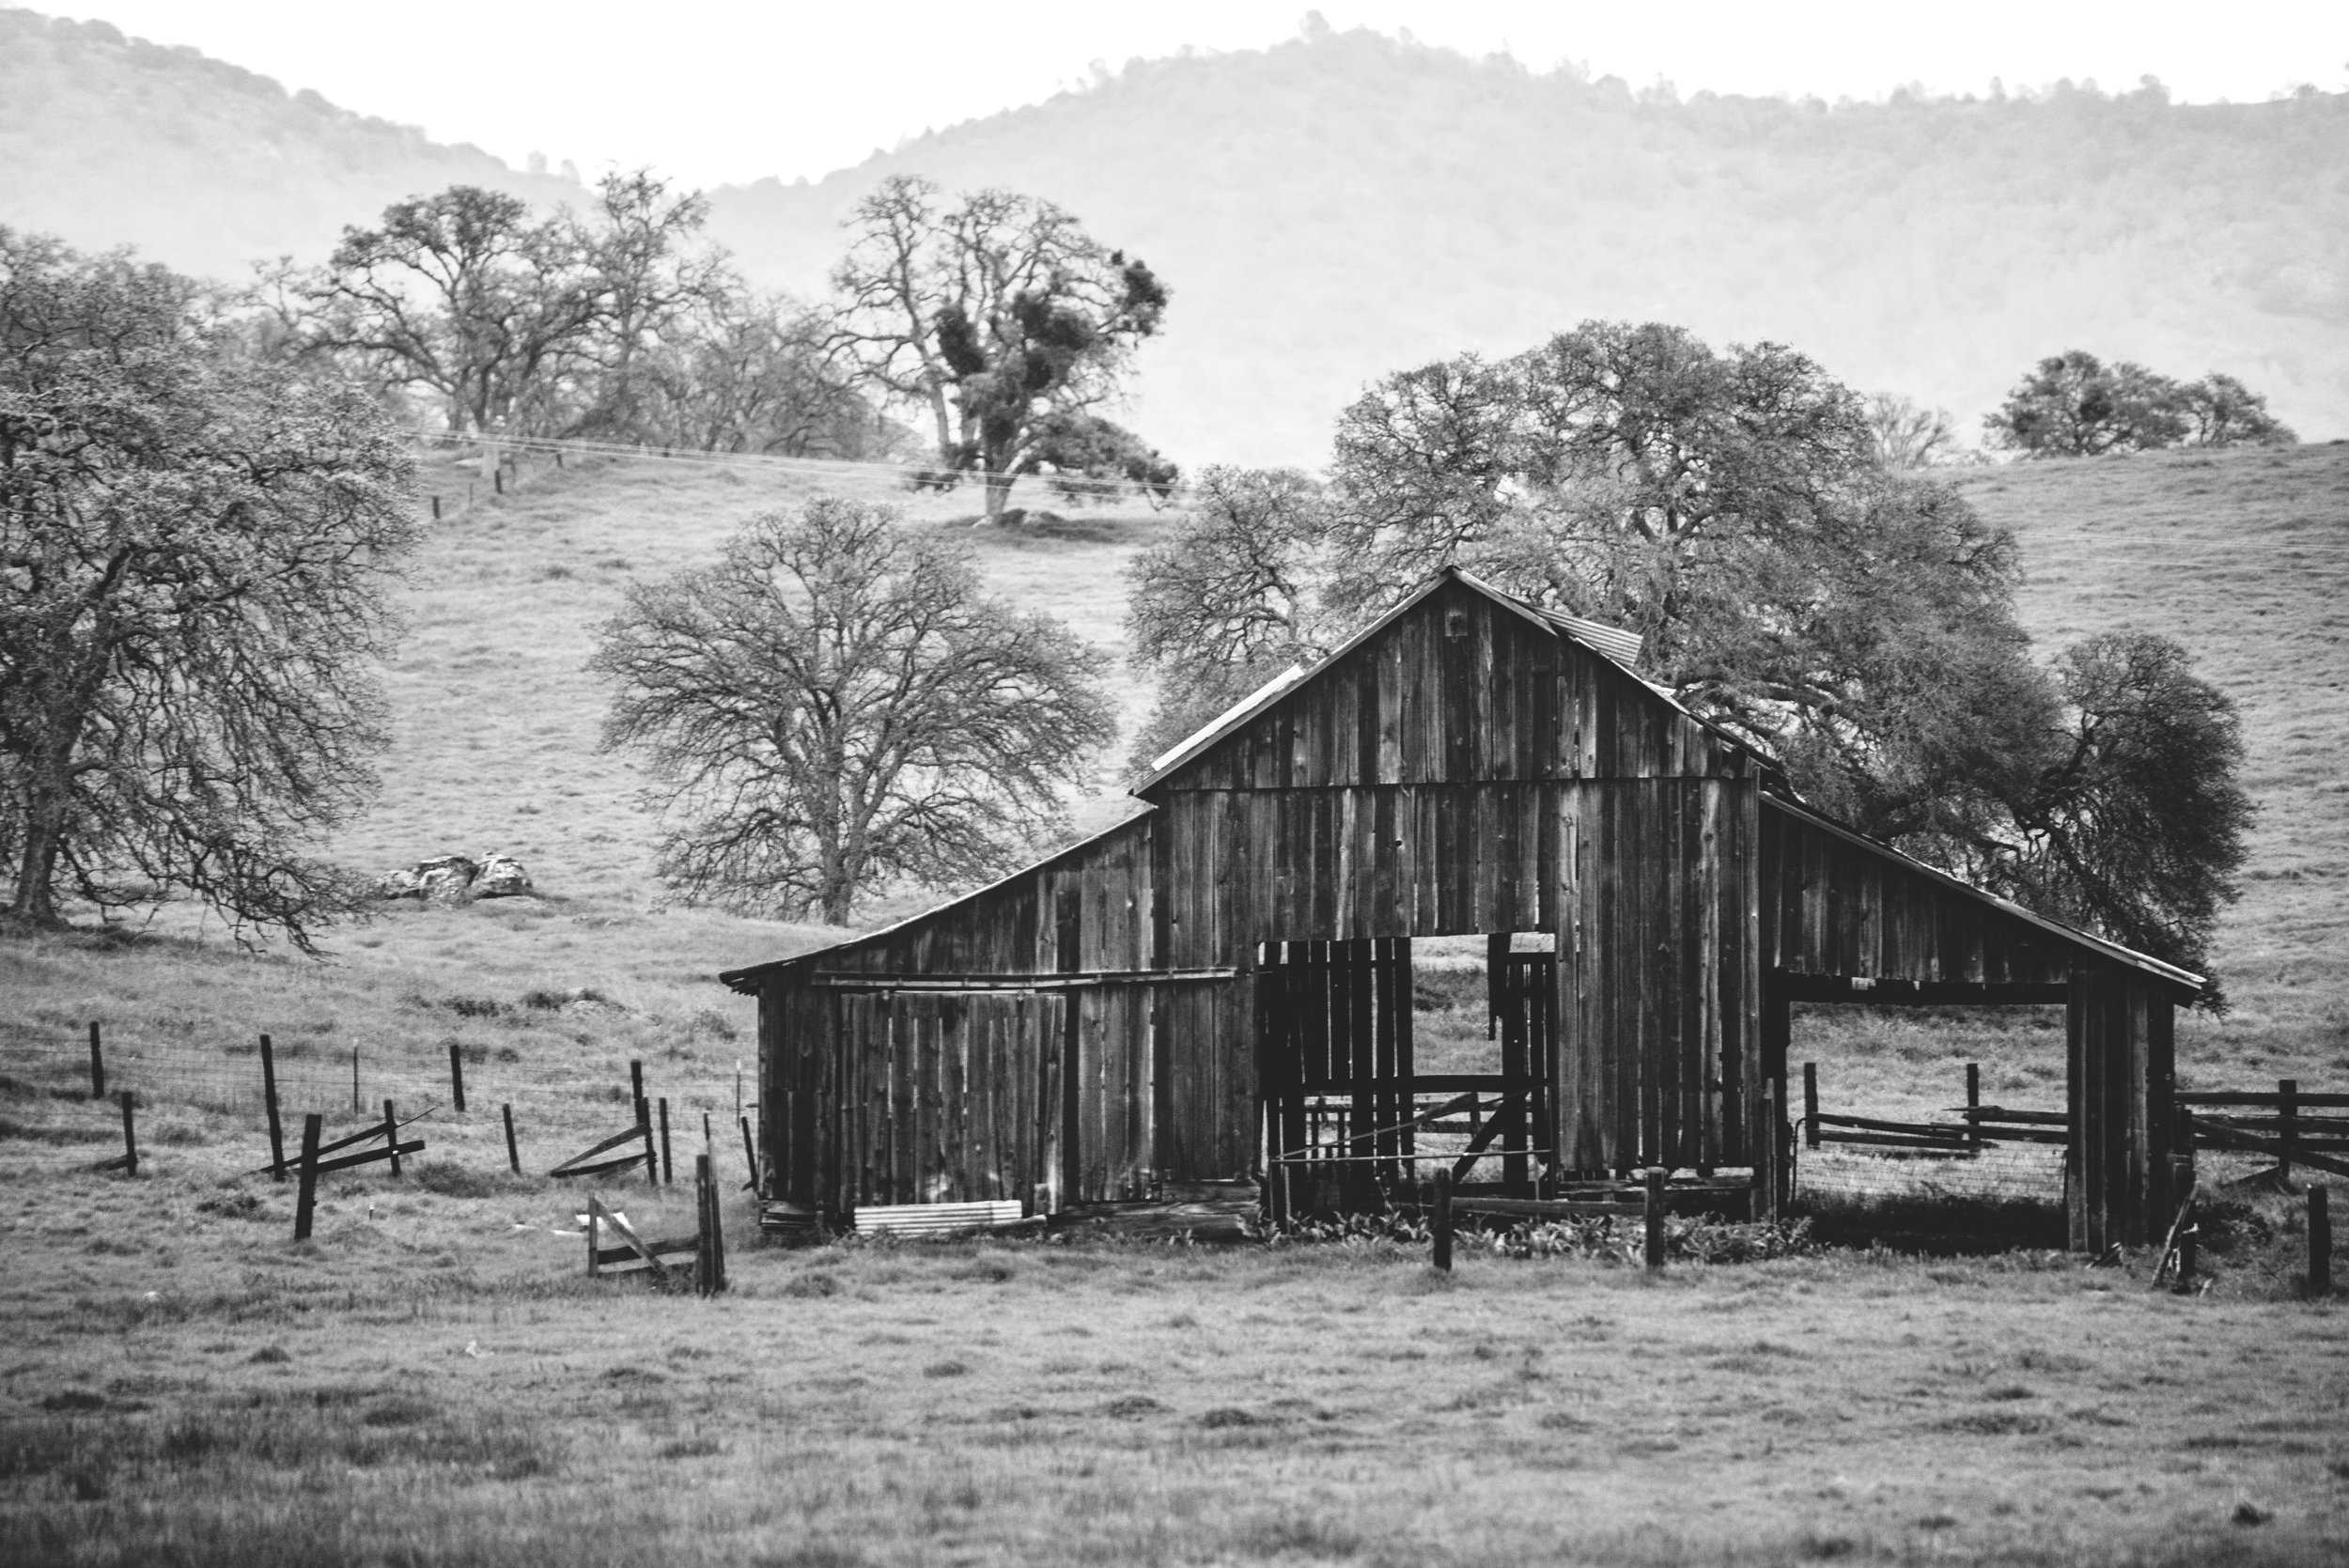 Old Barn off of 140 enroute to Yosemite